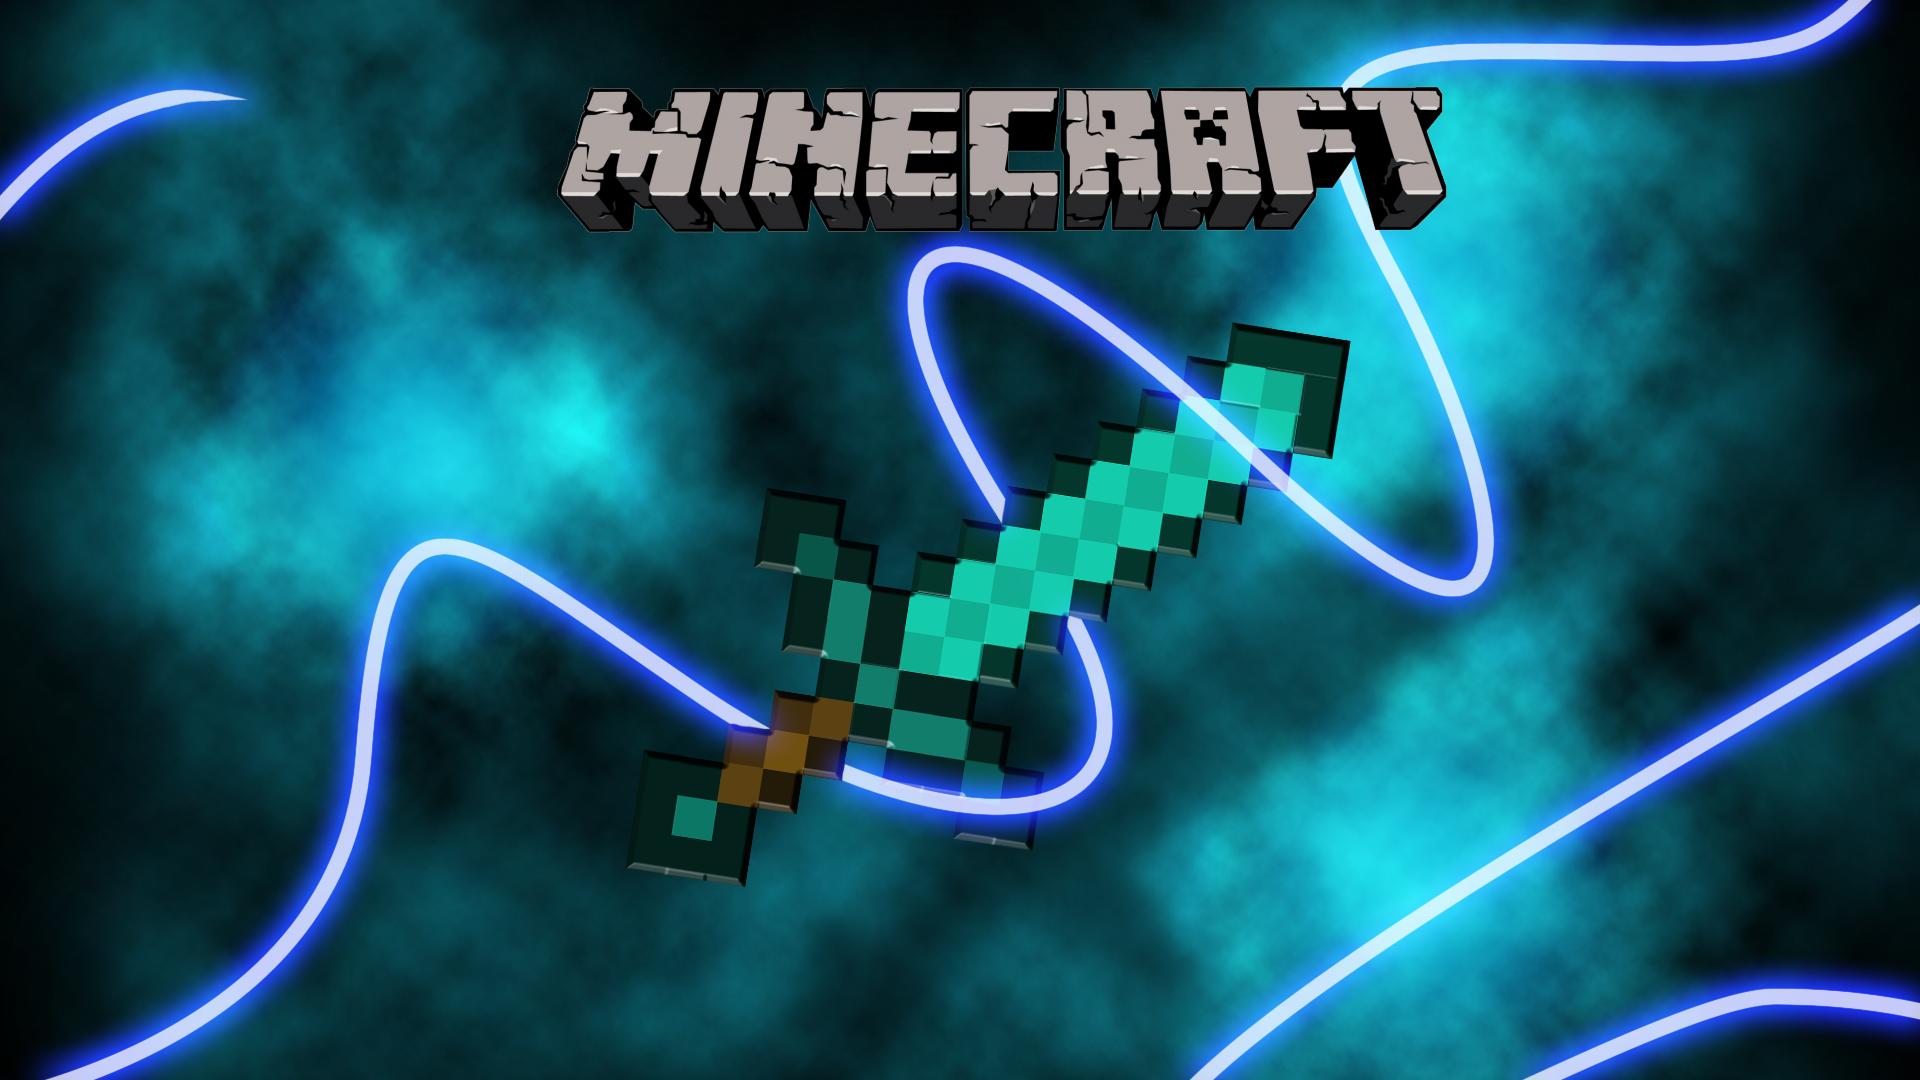 Minecraft creeper wallpaper mac i2 002 90 64 kb